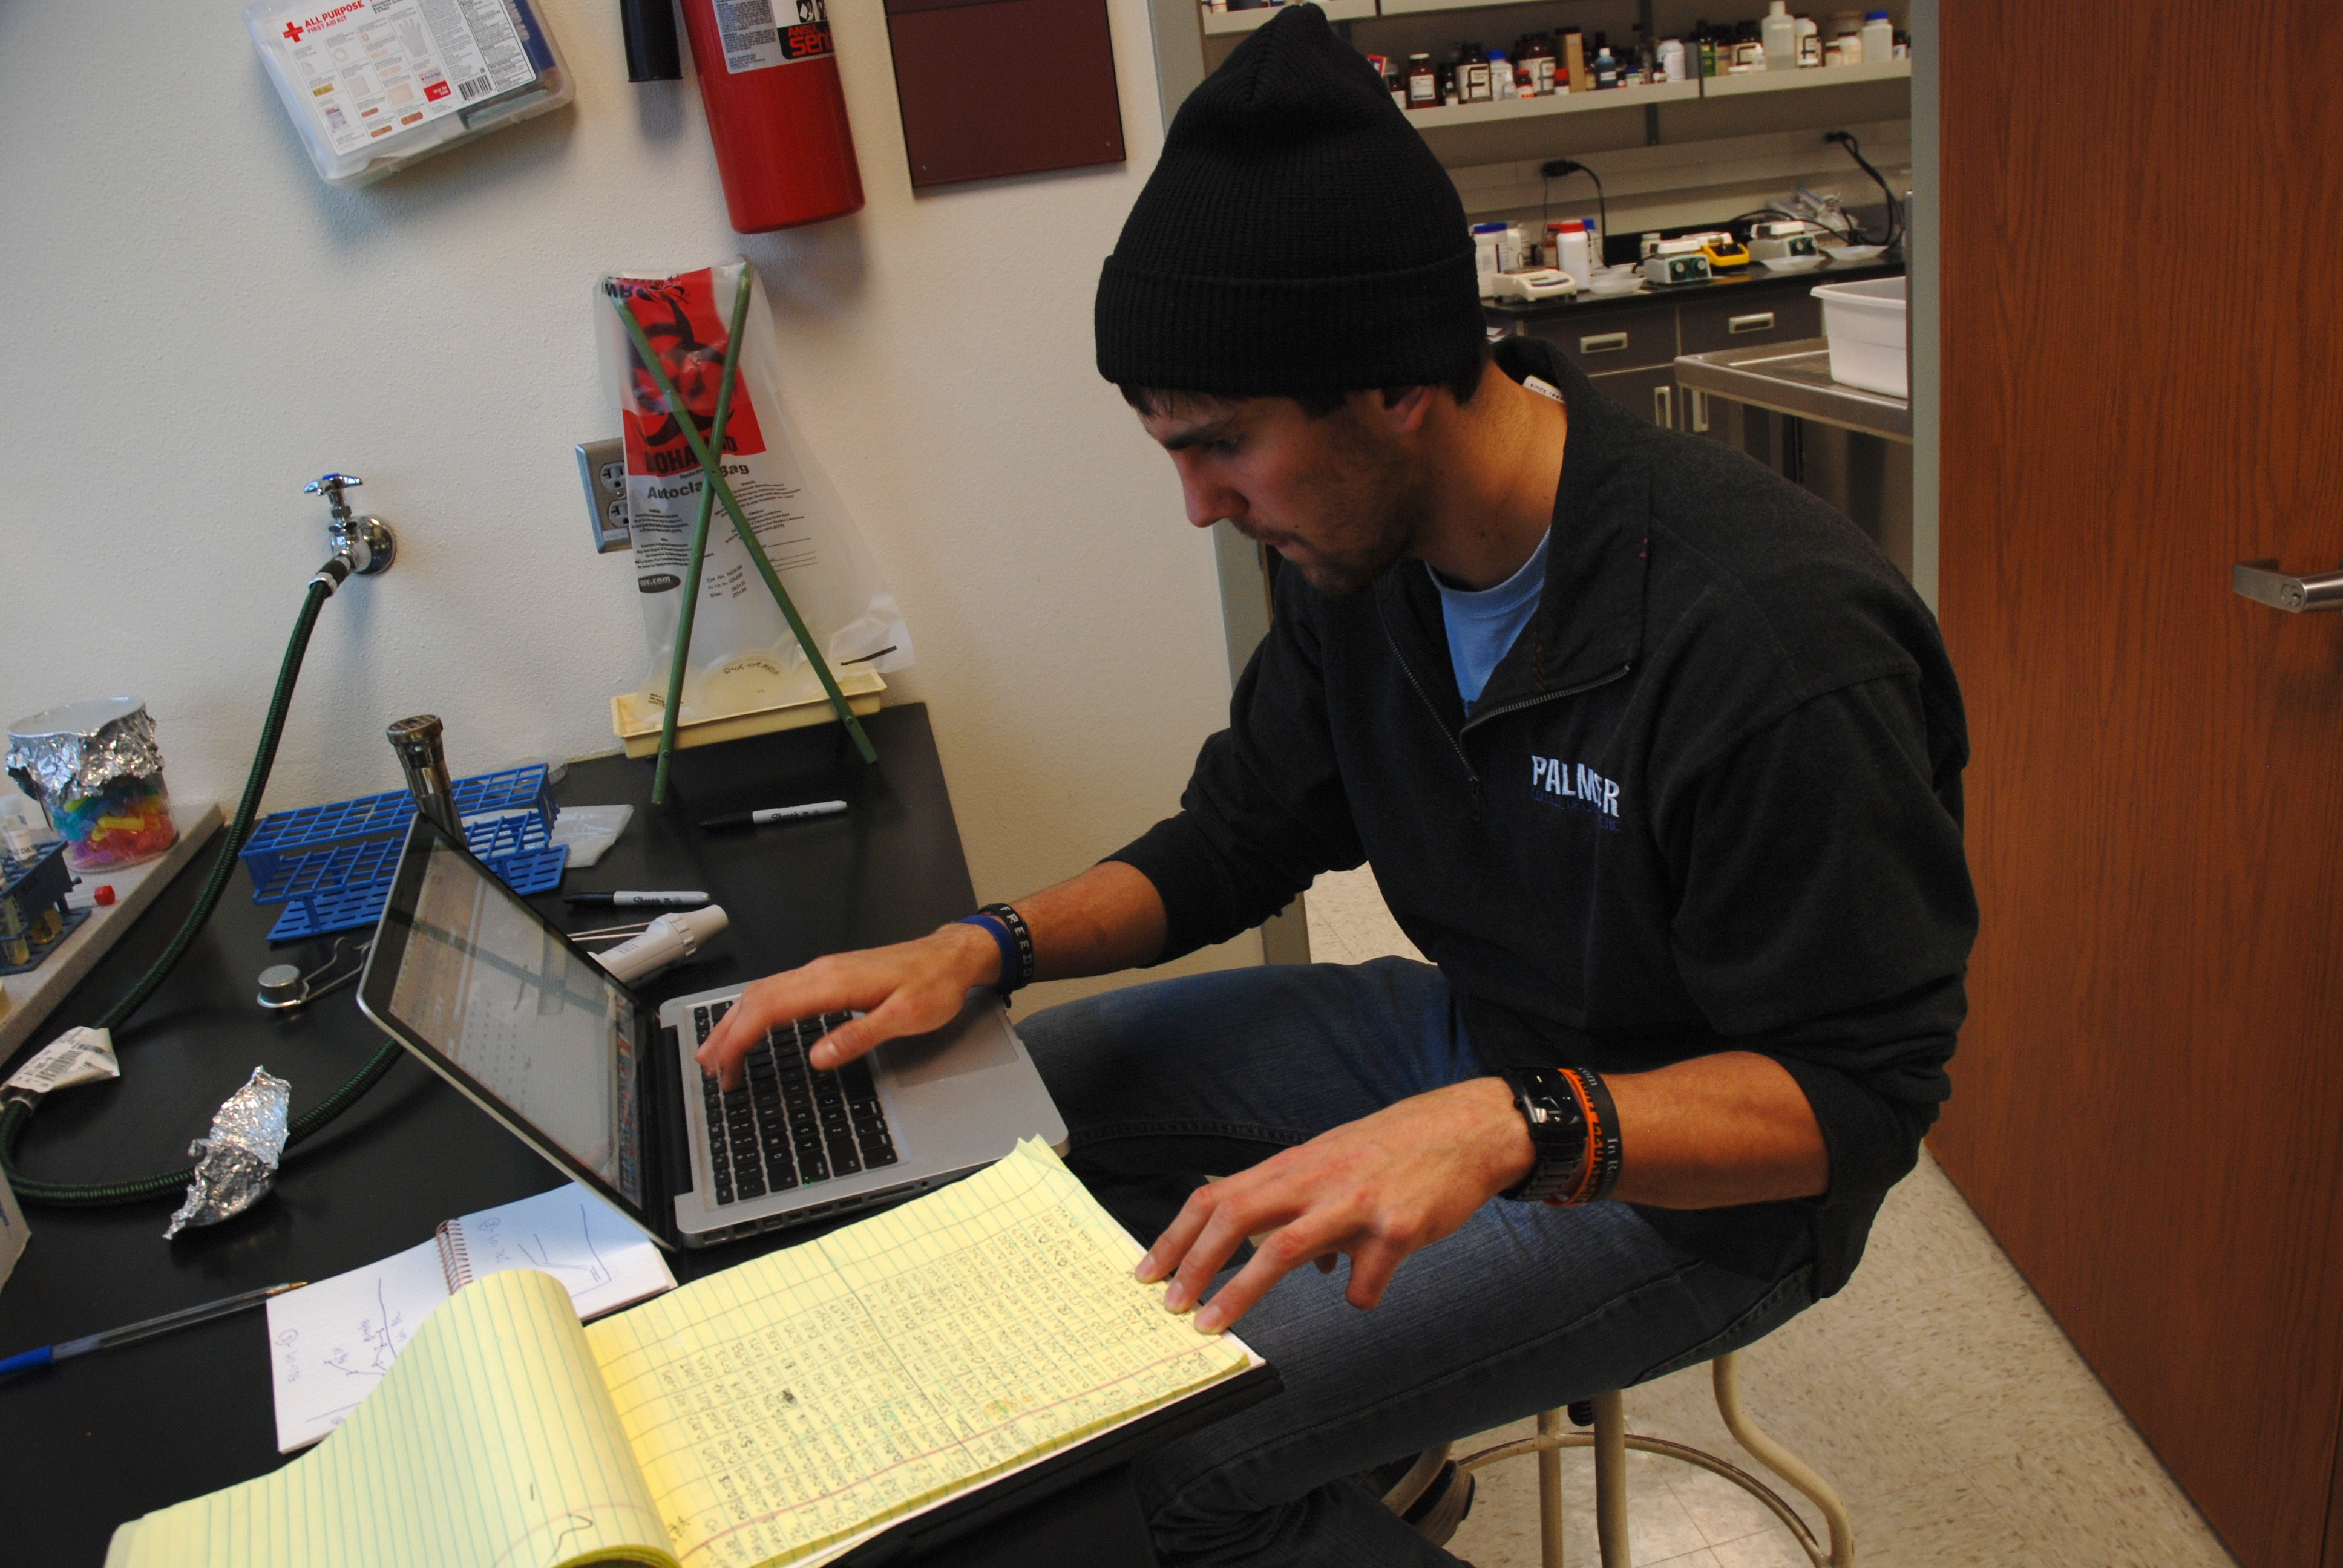 Drees spends between 15-20 hours a week in the lab outside of class time doing independent research.